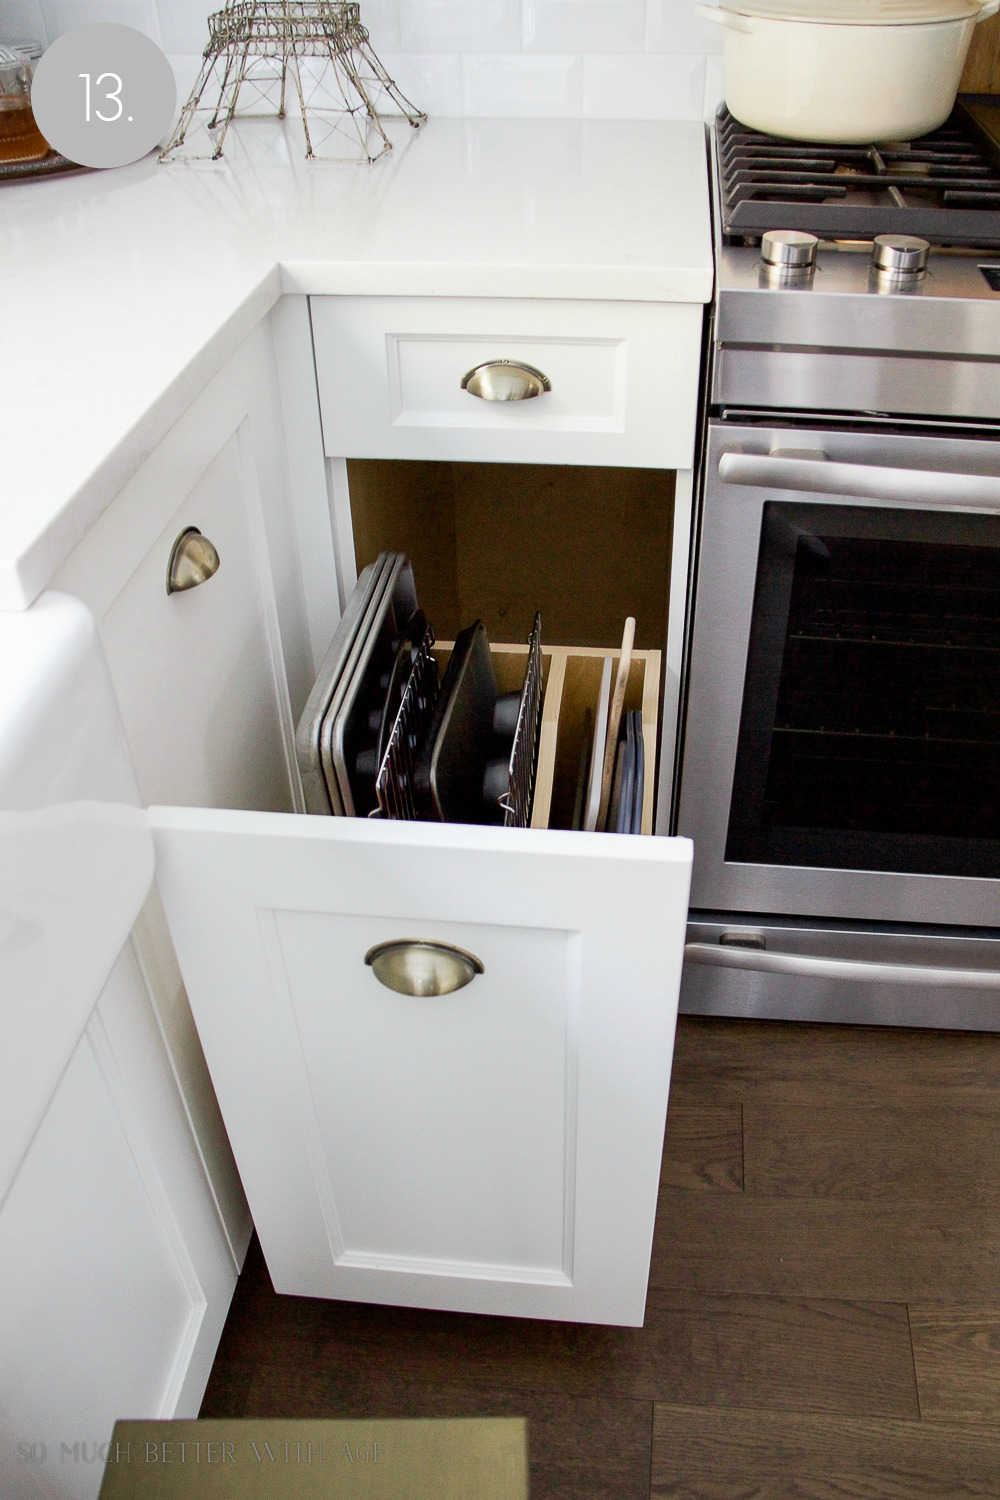 Kitchen cupboard and drawer organization / baking sheets in drawer - So Much Better With Age